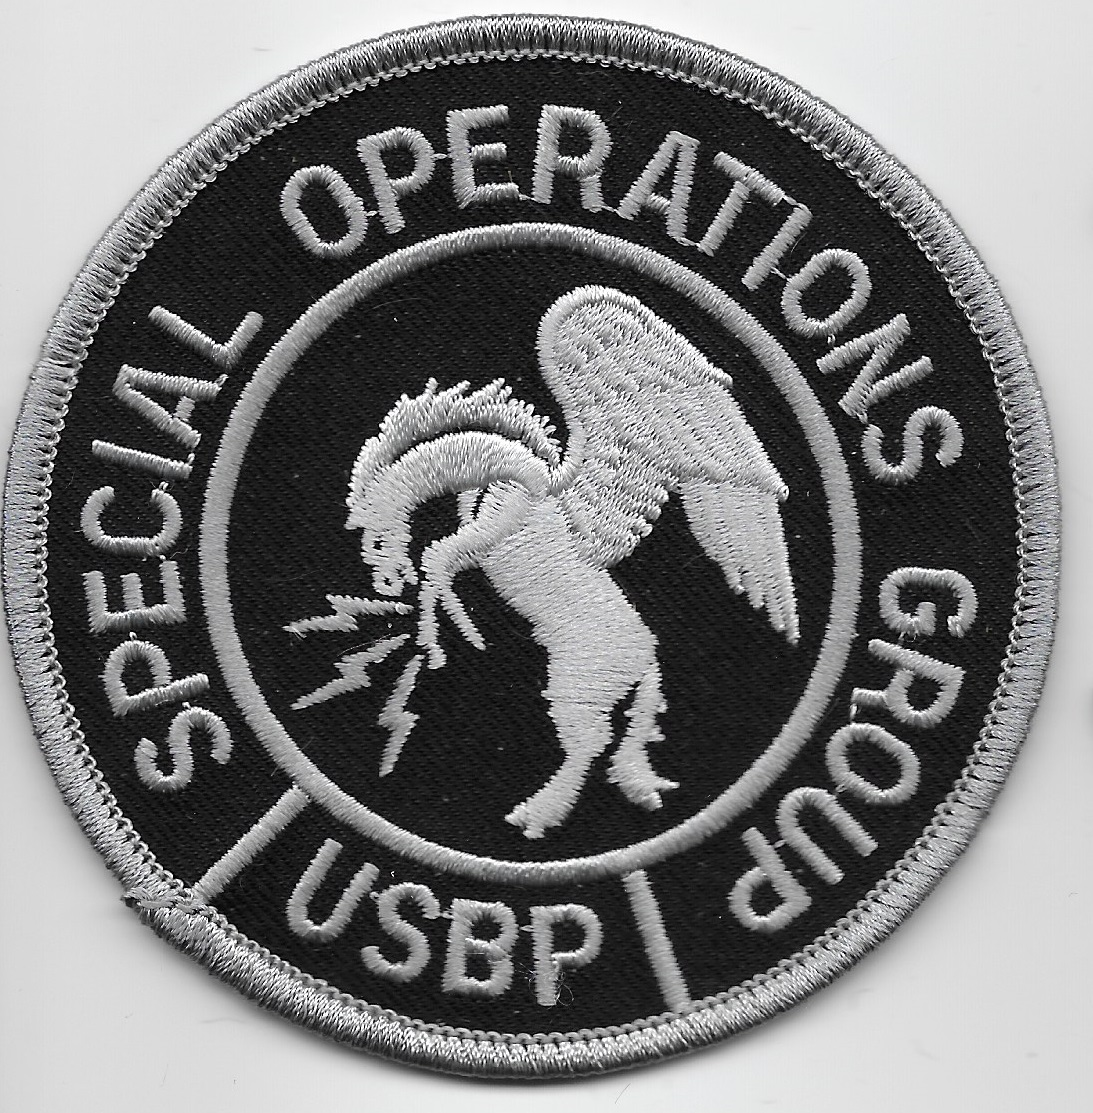 USBP Special OPS GRAY